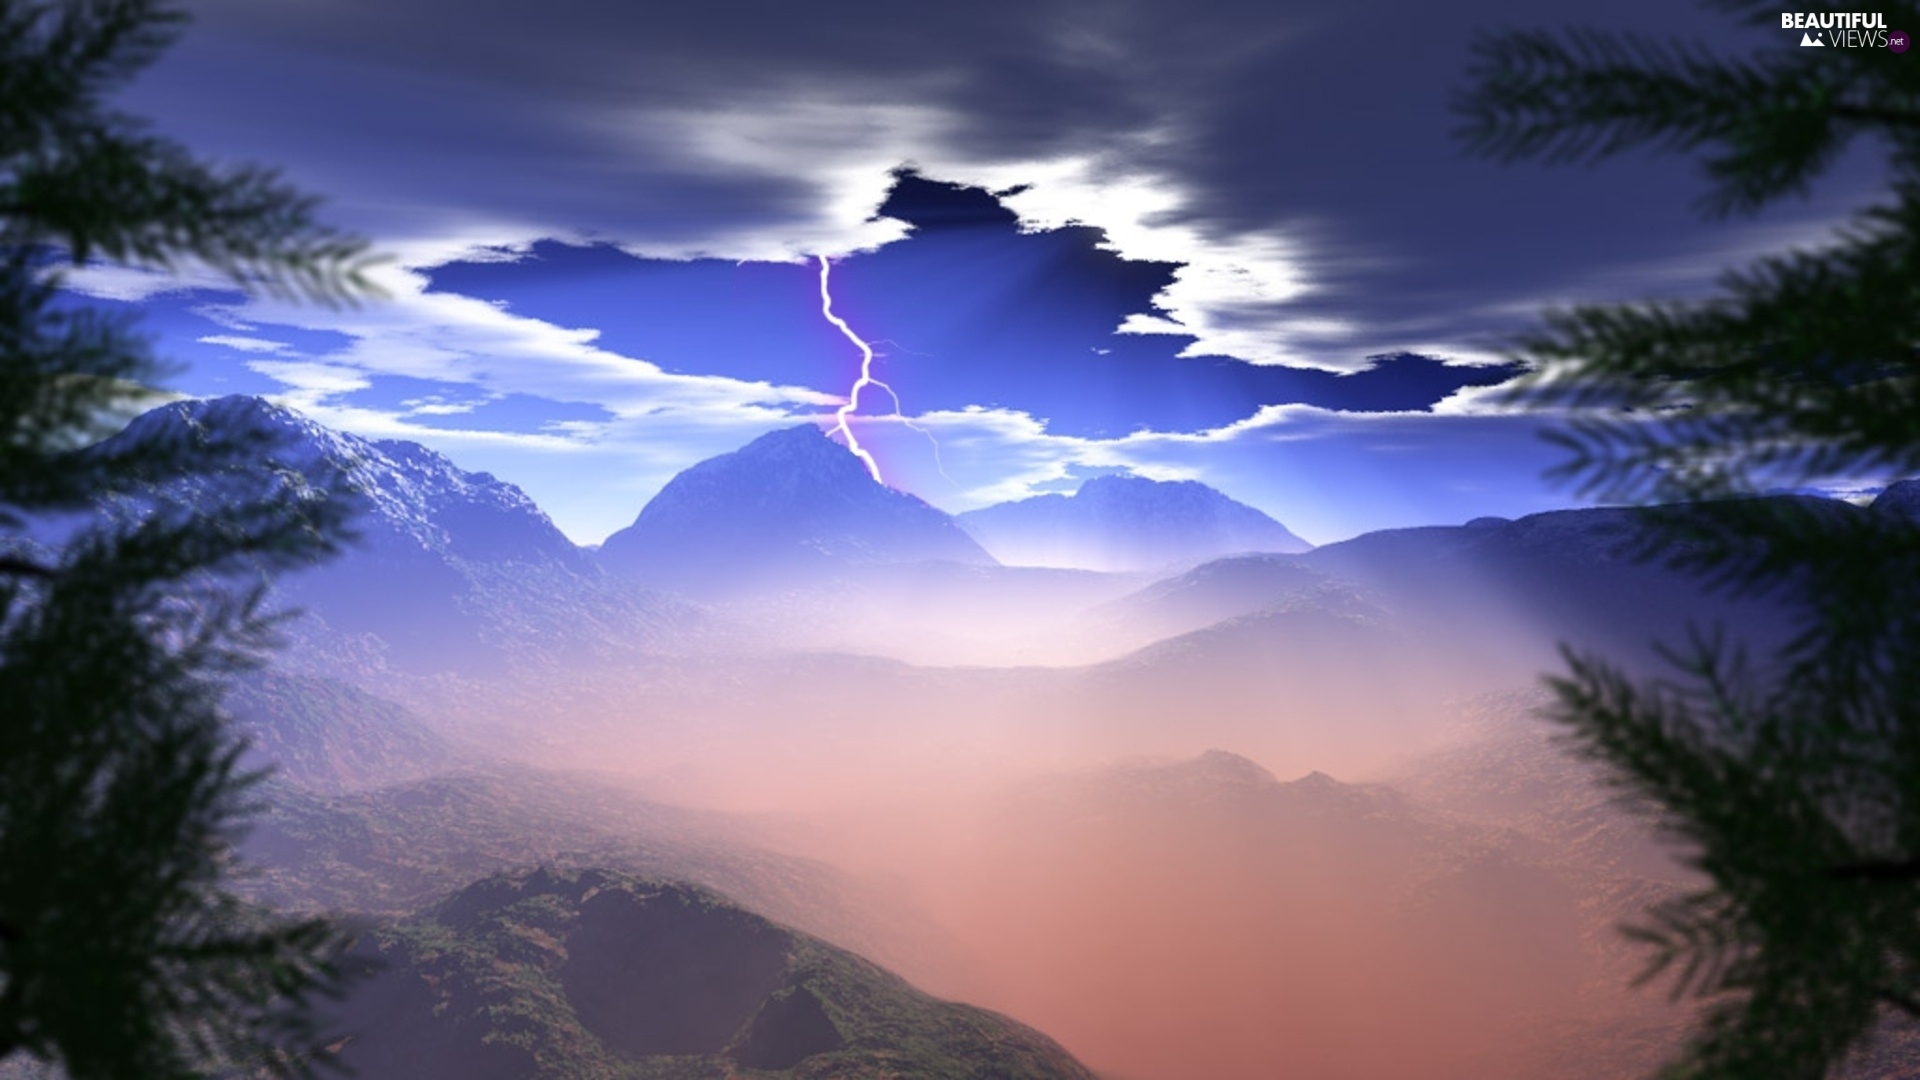 rays, sun, Sky, Mountains, Storm